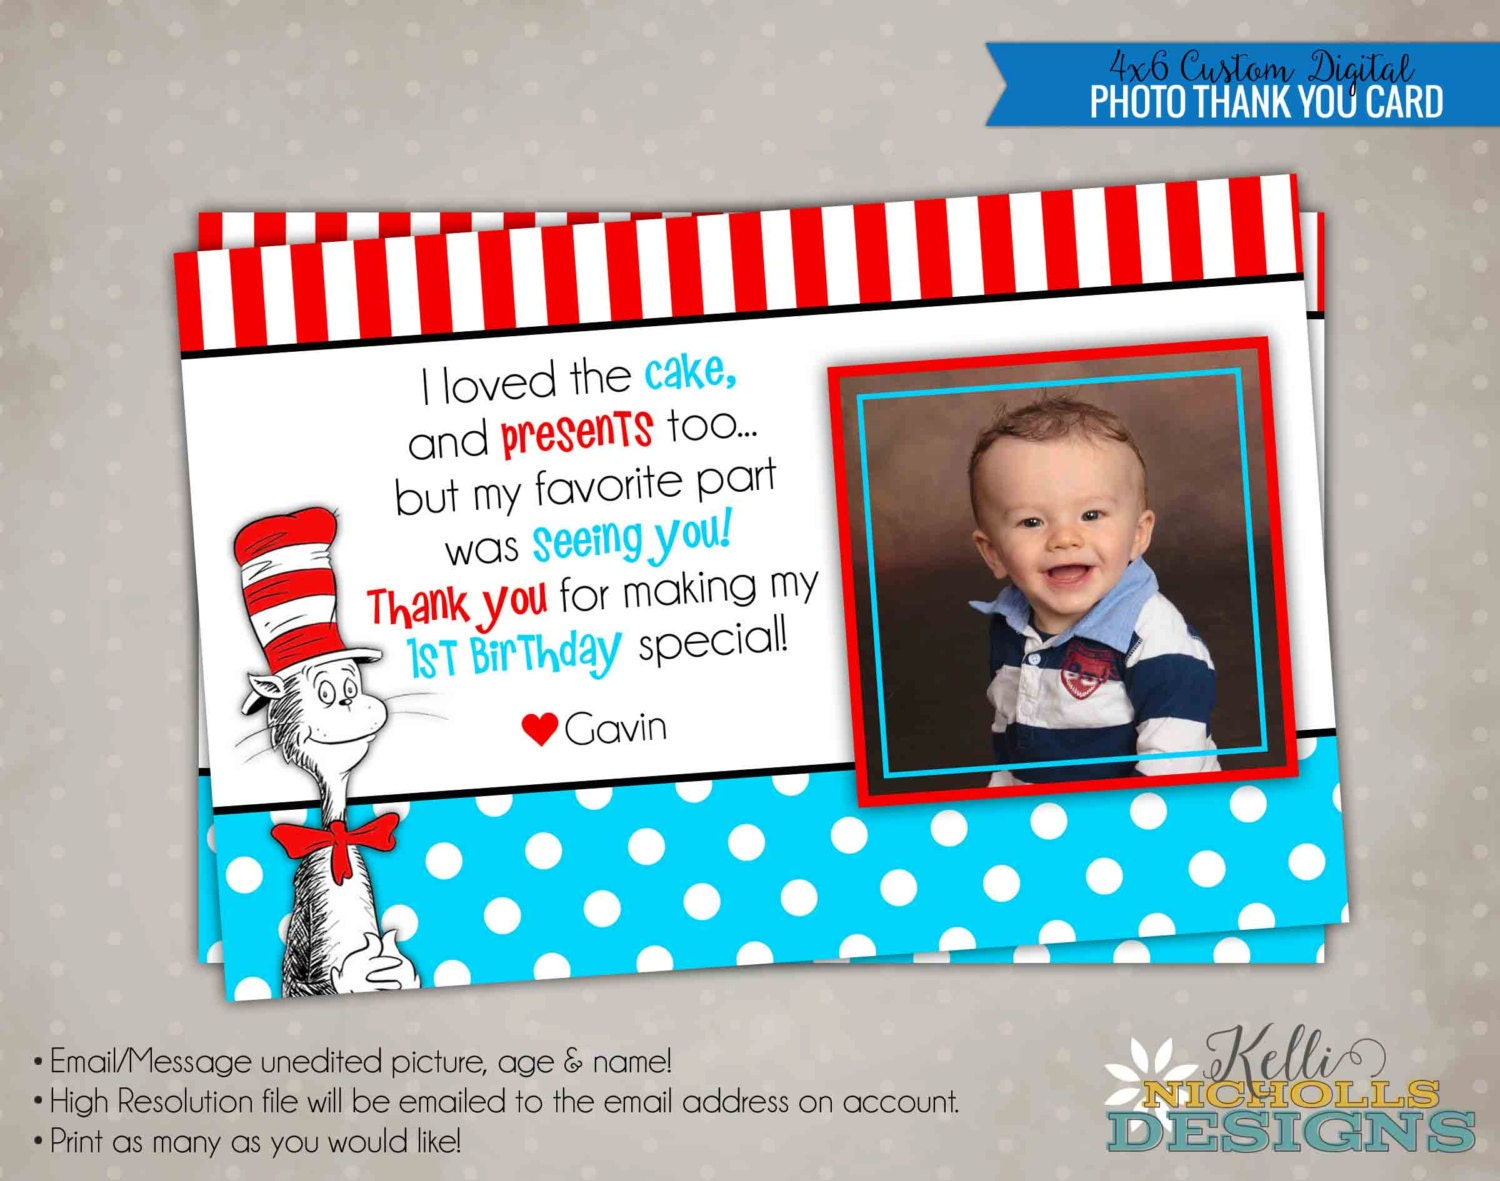 Cat in the Hat Children\'s Photo Birthday Party Thank You